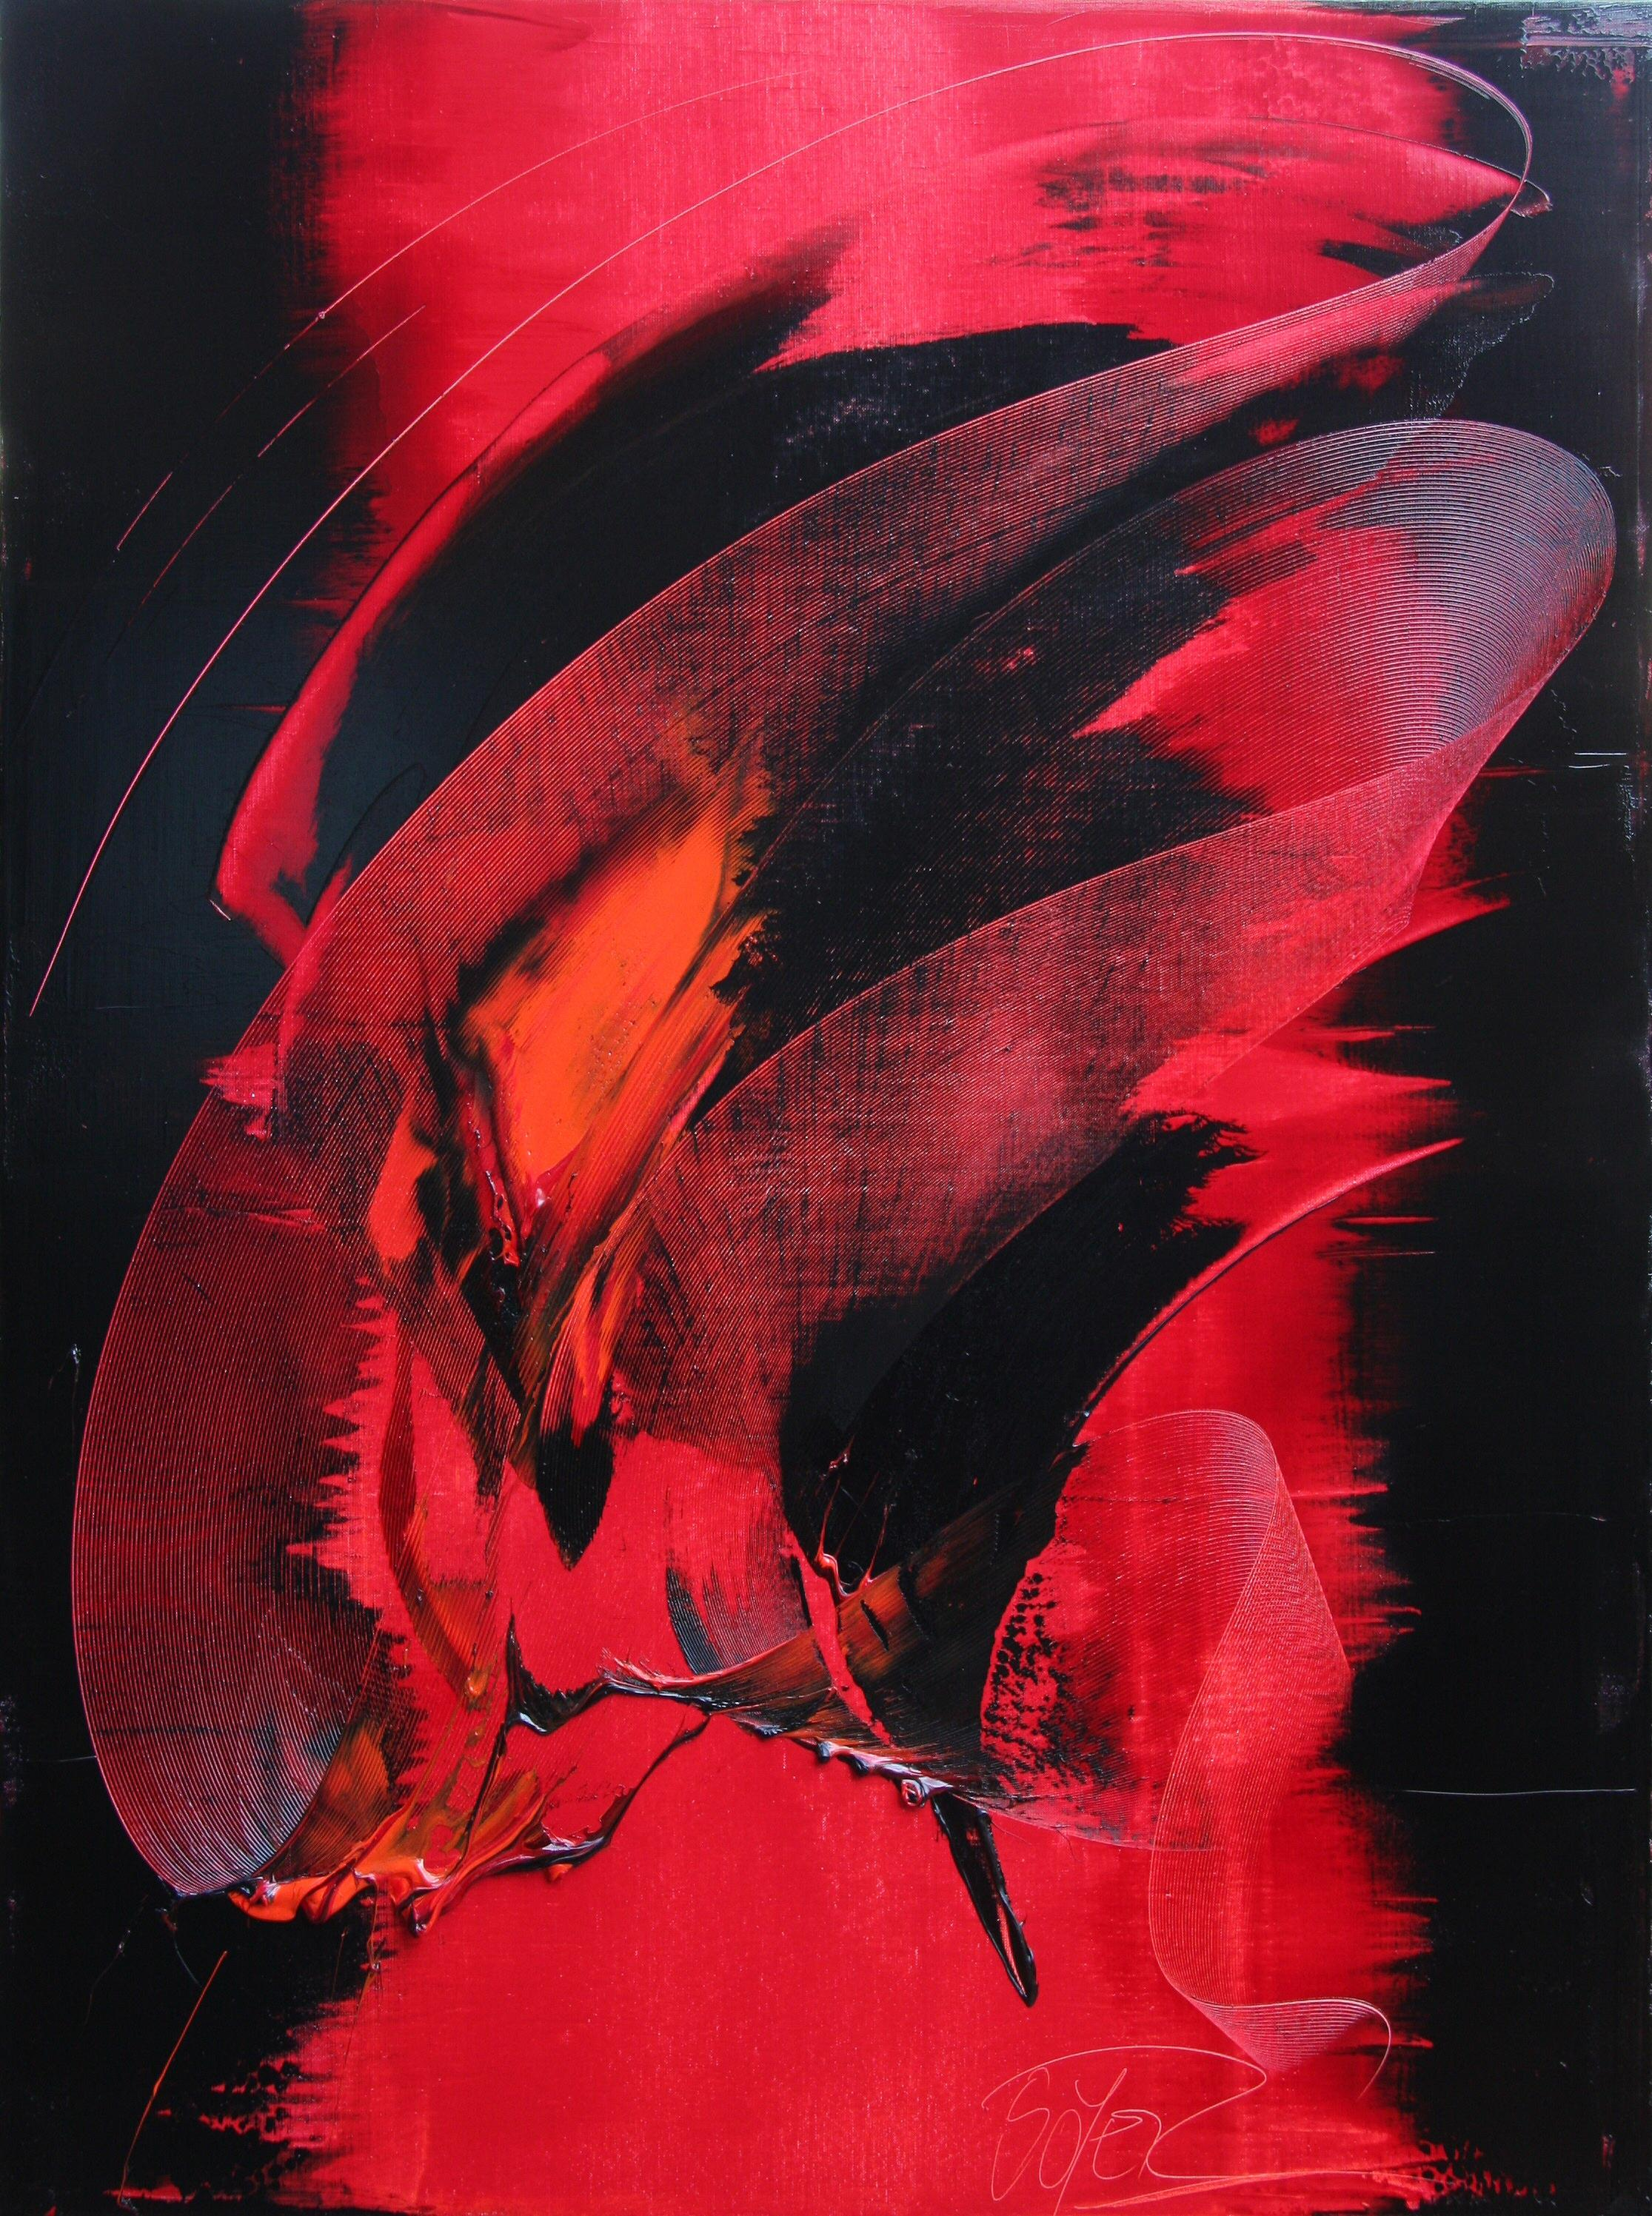 Red and Black Tornado Vertical Abstract Oil Painting